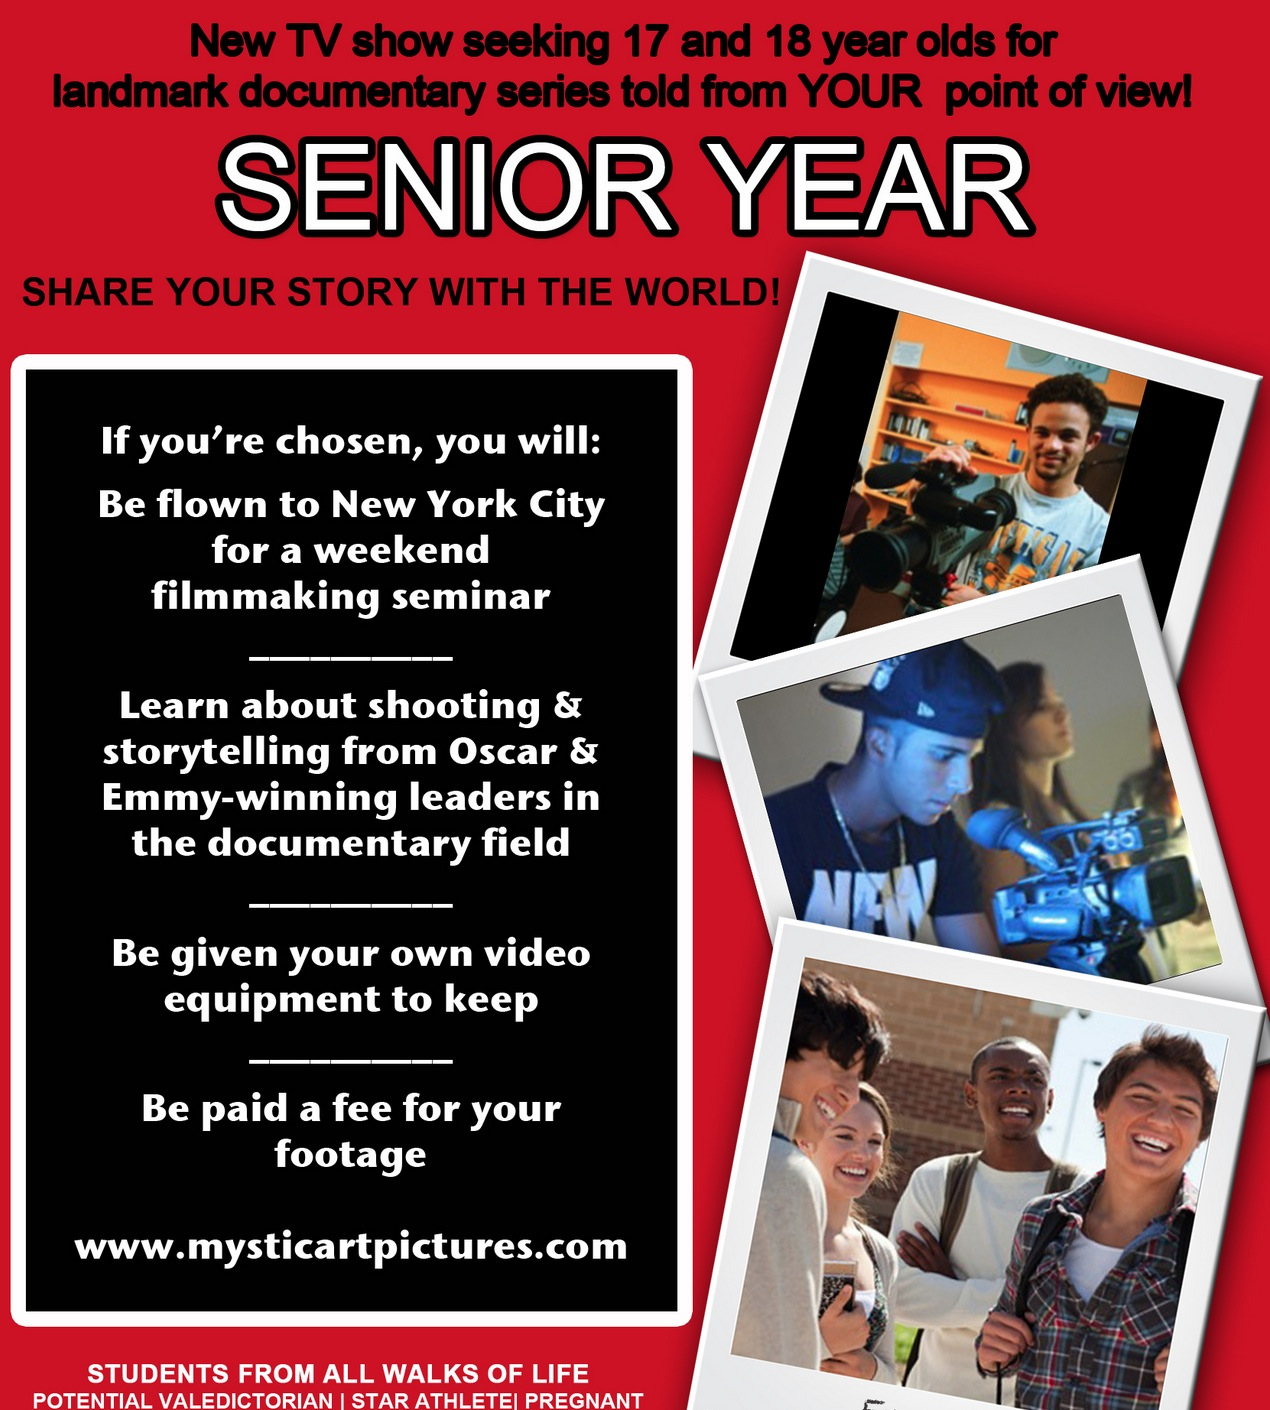 MysticArt Pictures Launches Nationwide Casting Search for a New Landmark Documentary Series About Life in America as Experienced by High School Seniors